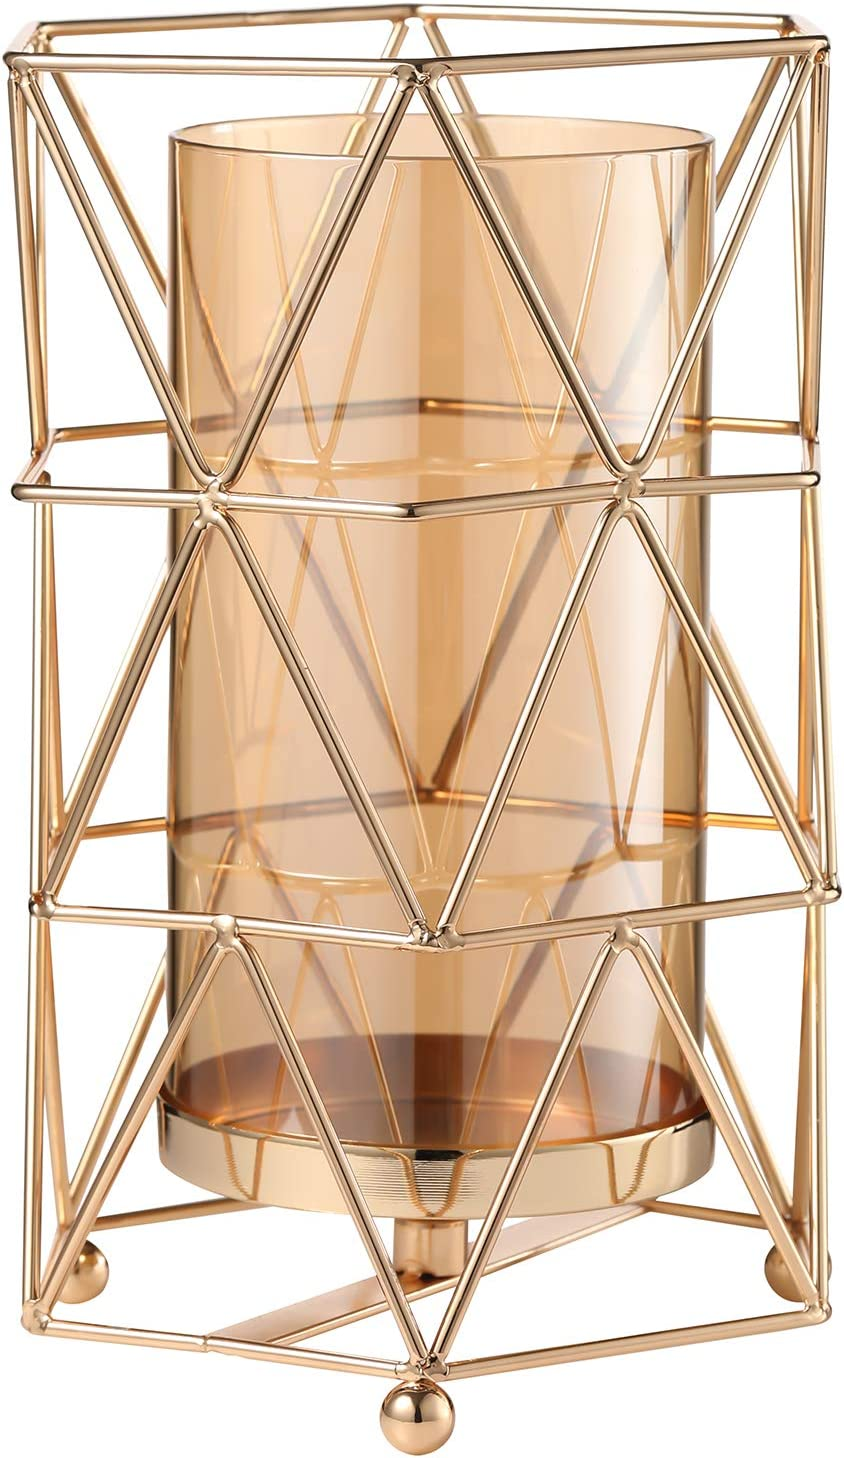 Geometric Glass Vase with Metal Bracket, Crystal Transparent Inner Vase, Hand-Plated Geometric Metal Vase, Rose Gold Vase Decor for Home Office Wedding Holiday Party Gift